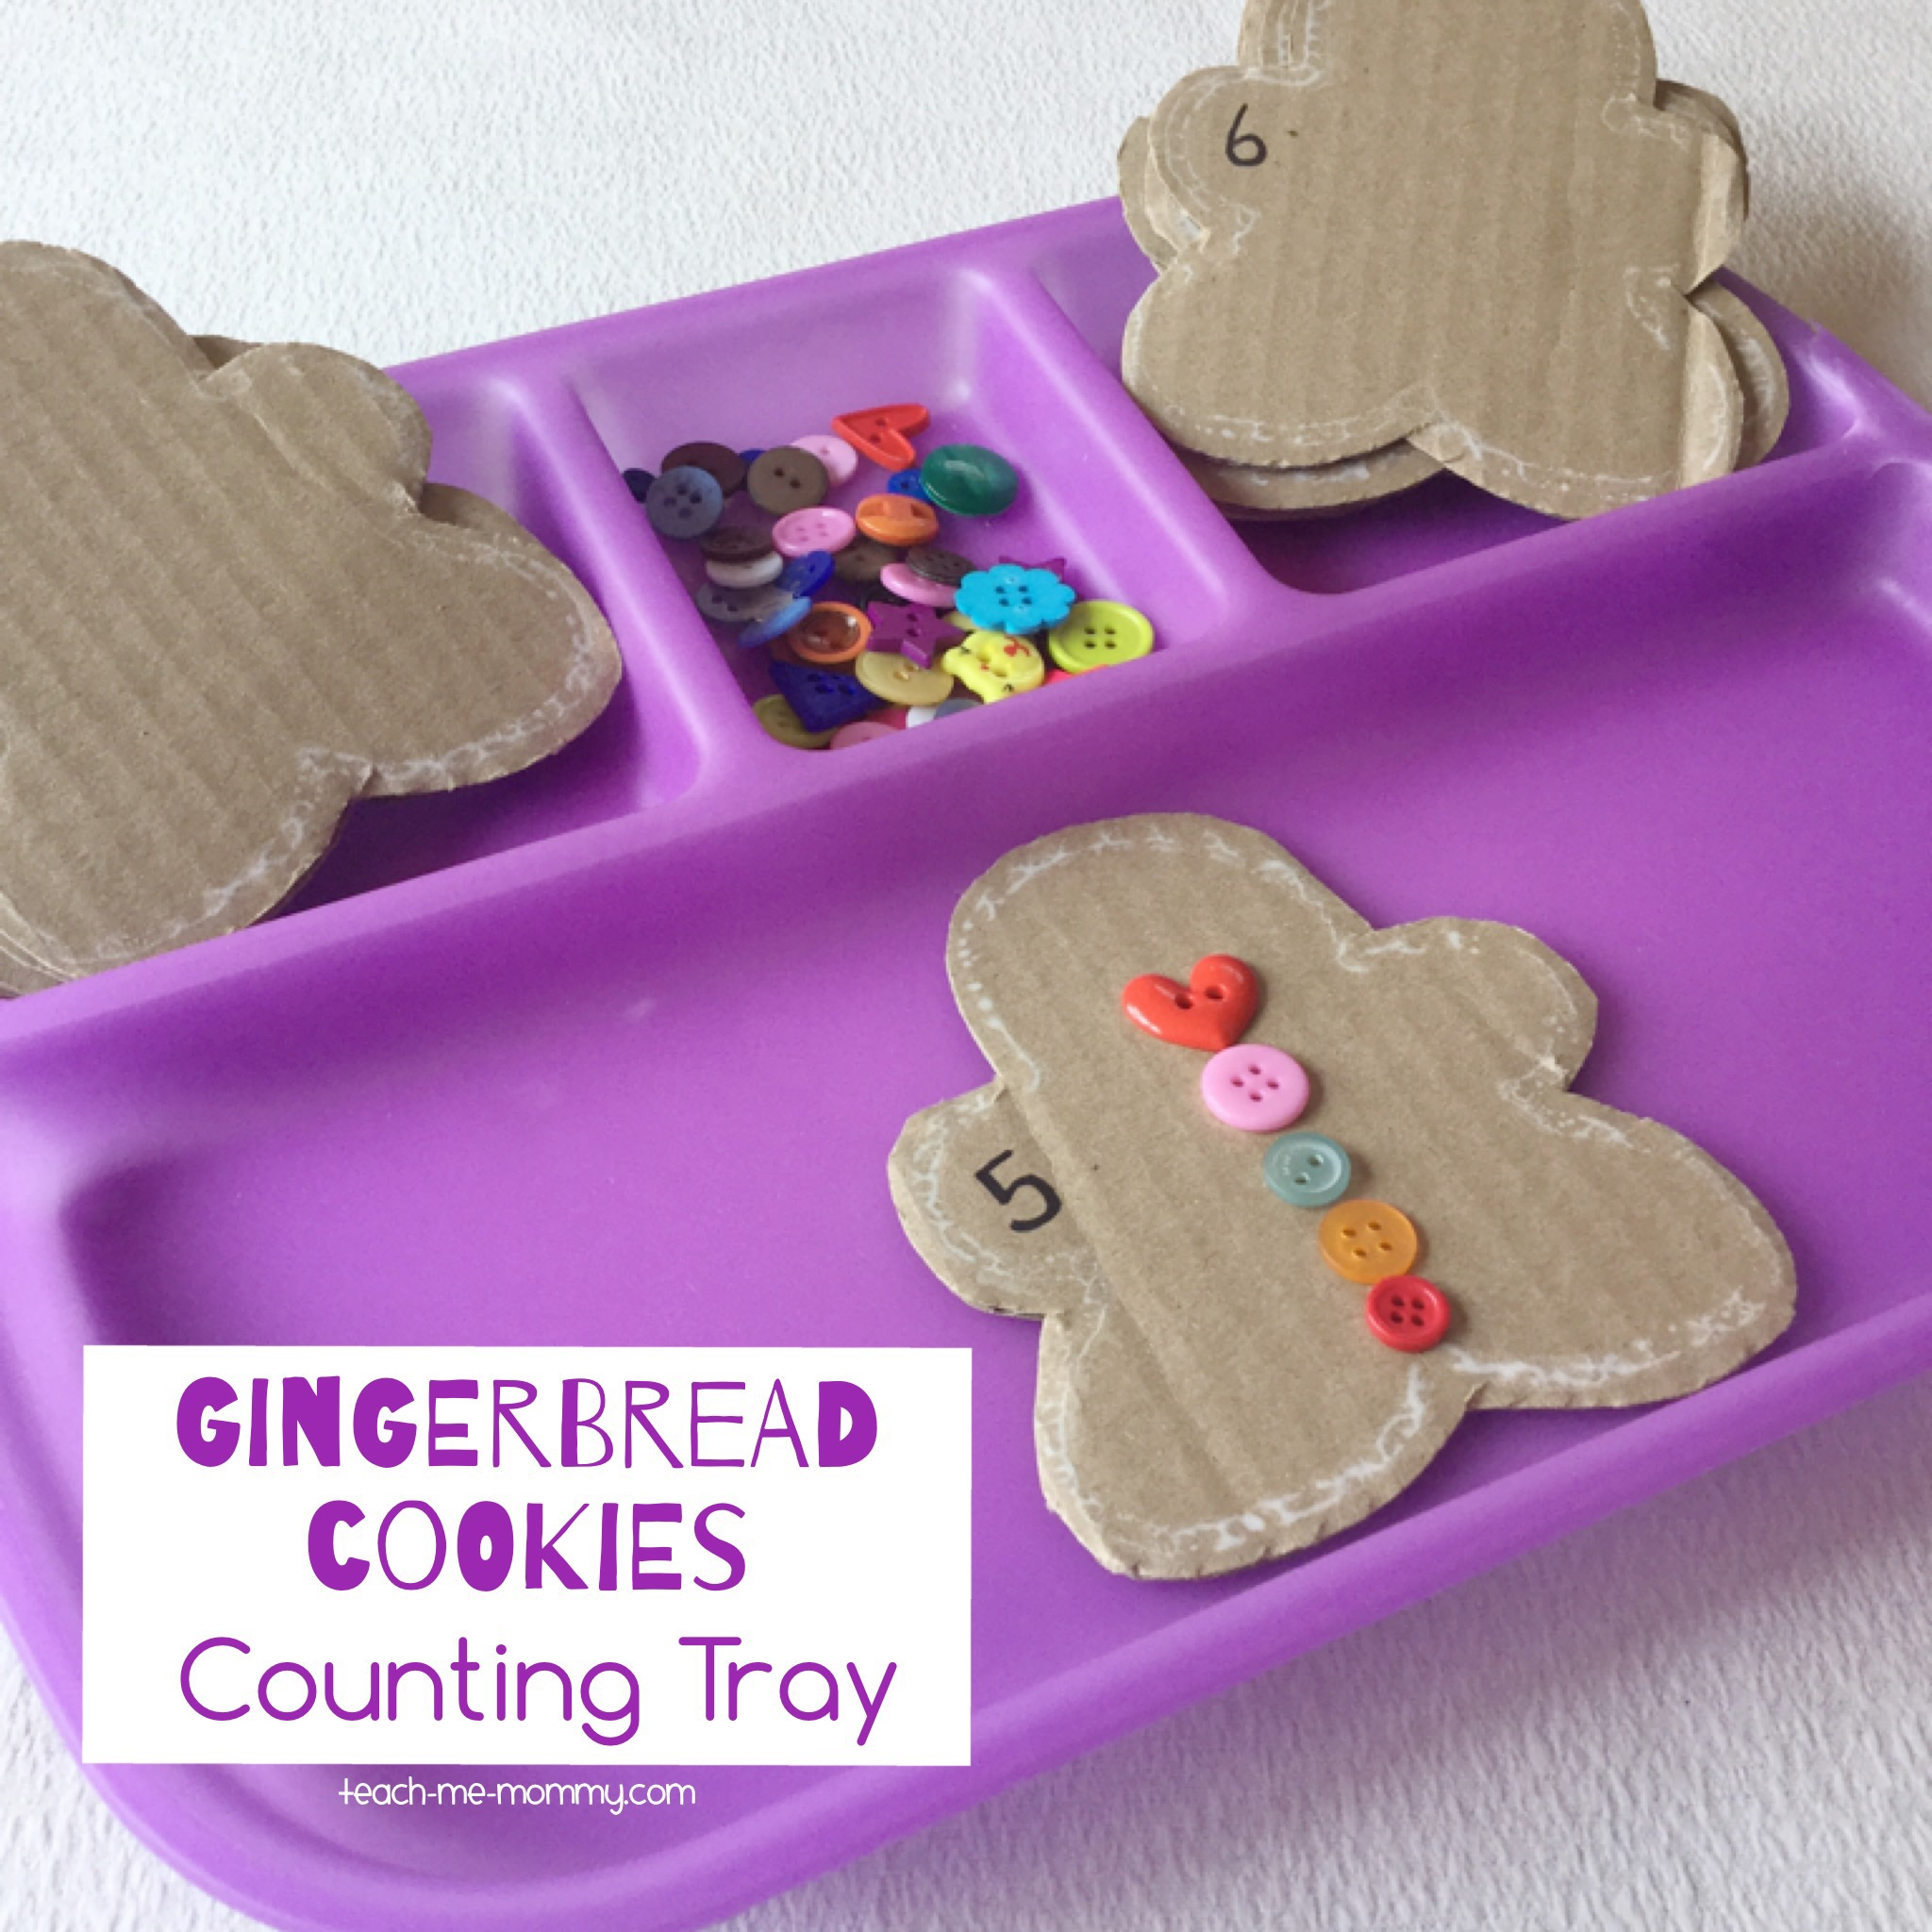 gingerbread cookies tray